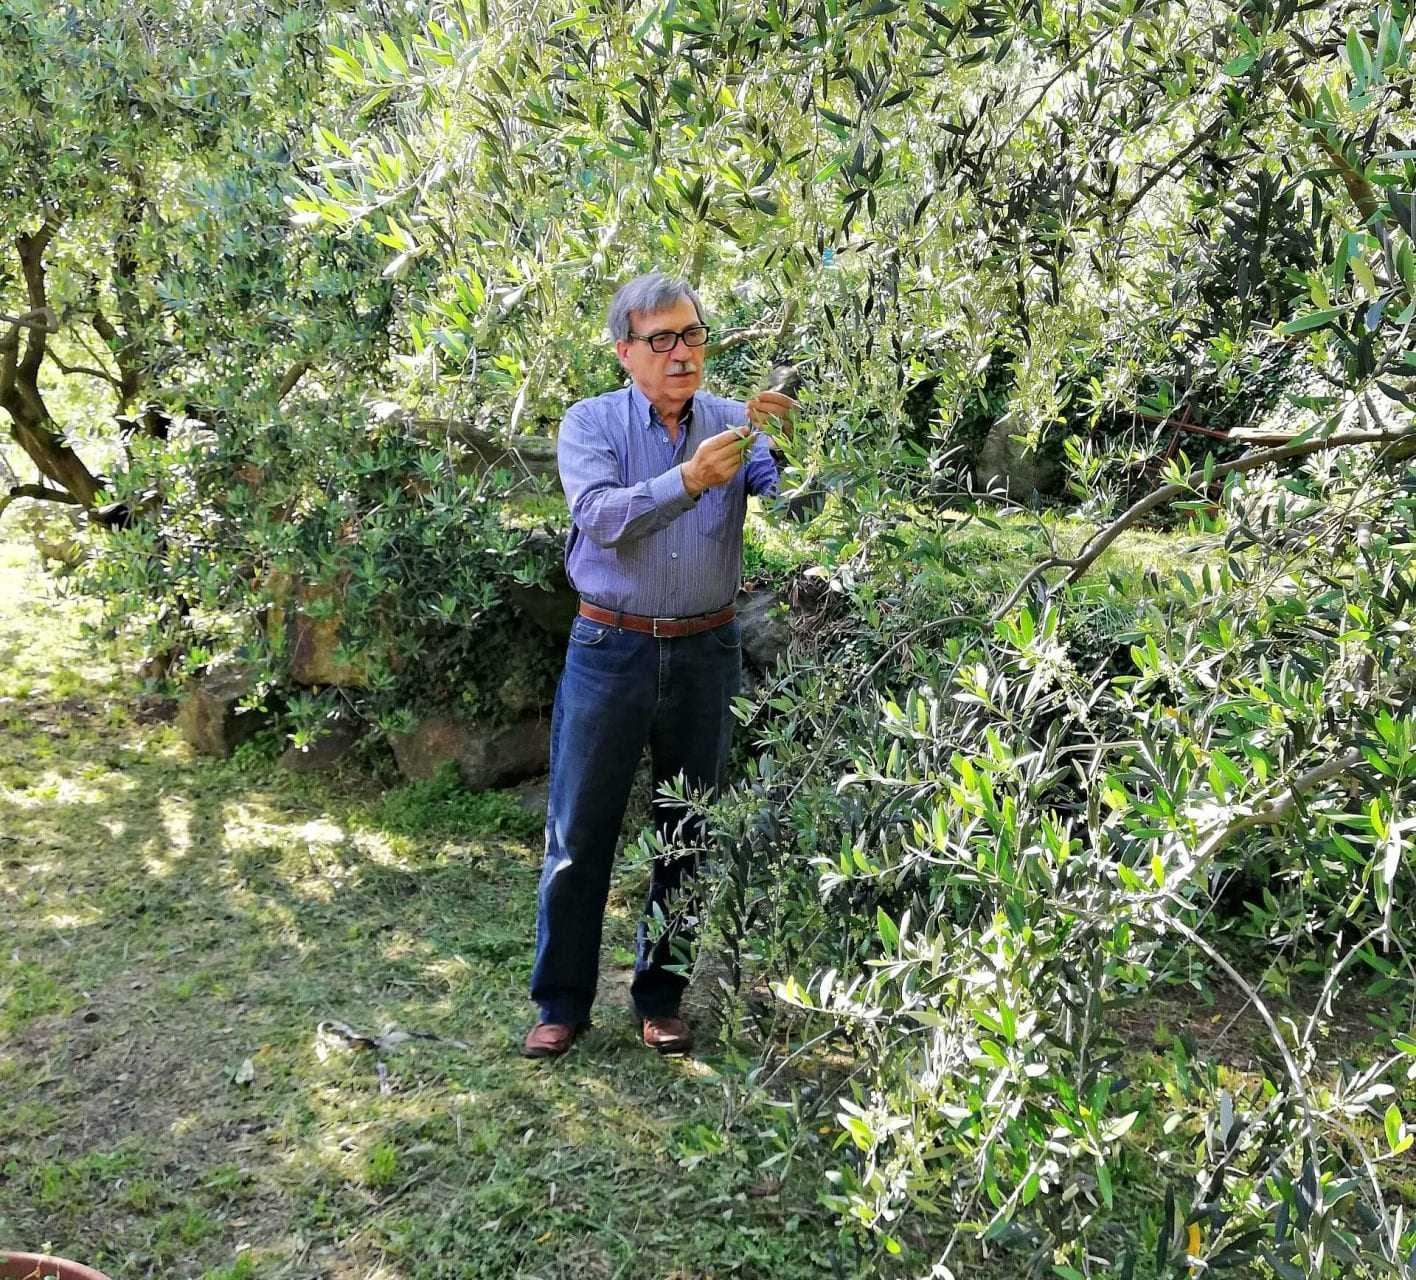 extreme-olive-growing-in-valle-daosta-and-piemonte